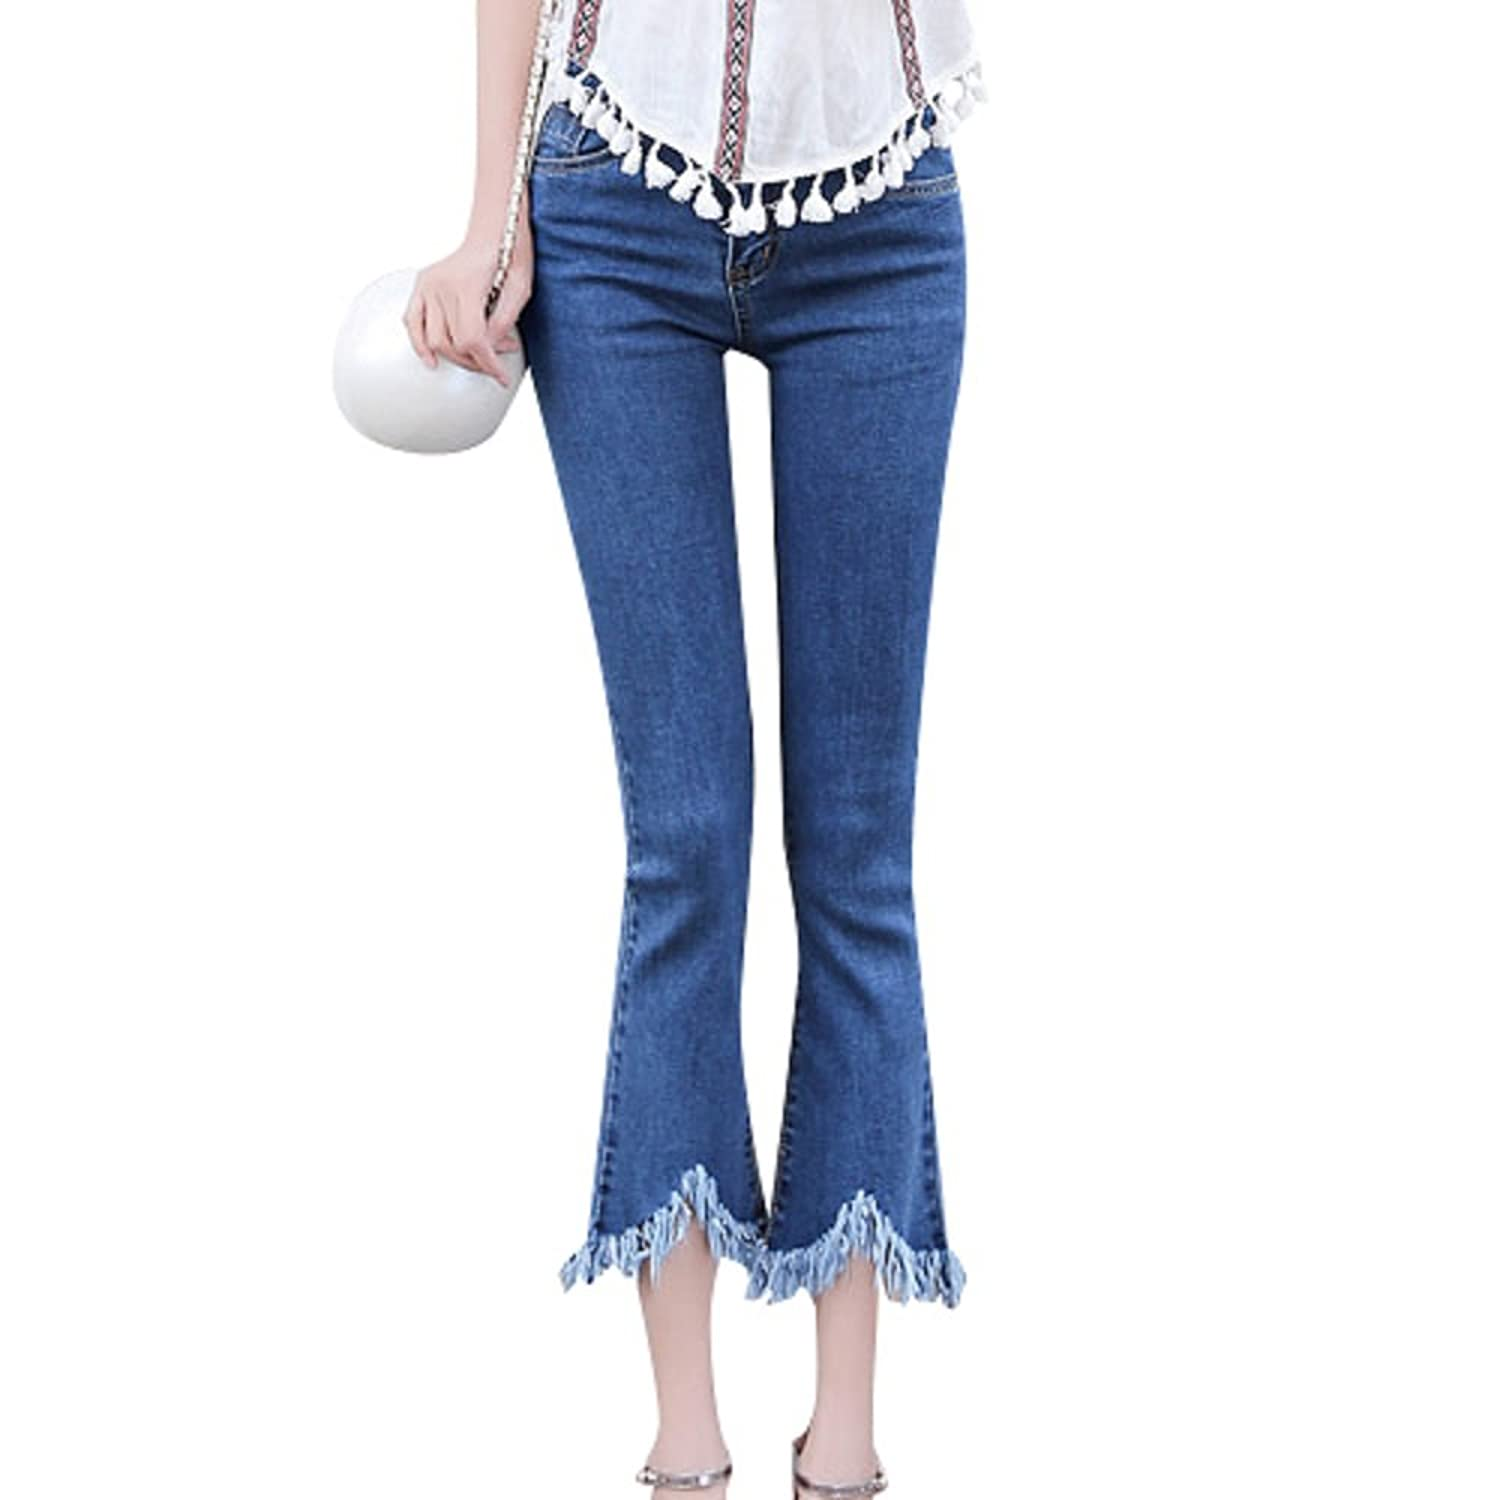 Better Smile Women Fashion Fringed Mid Wasit Flares Skinny Jeans